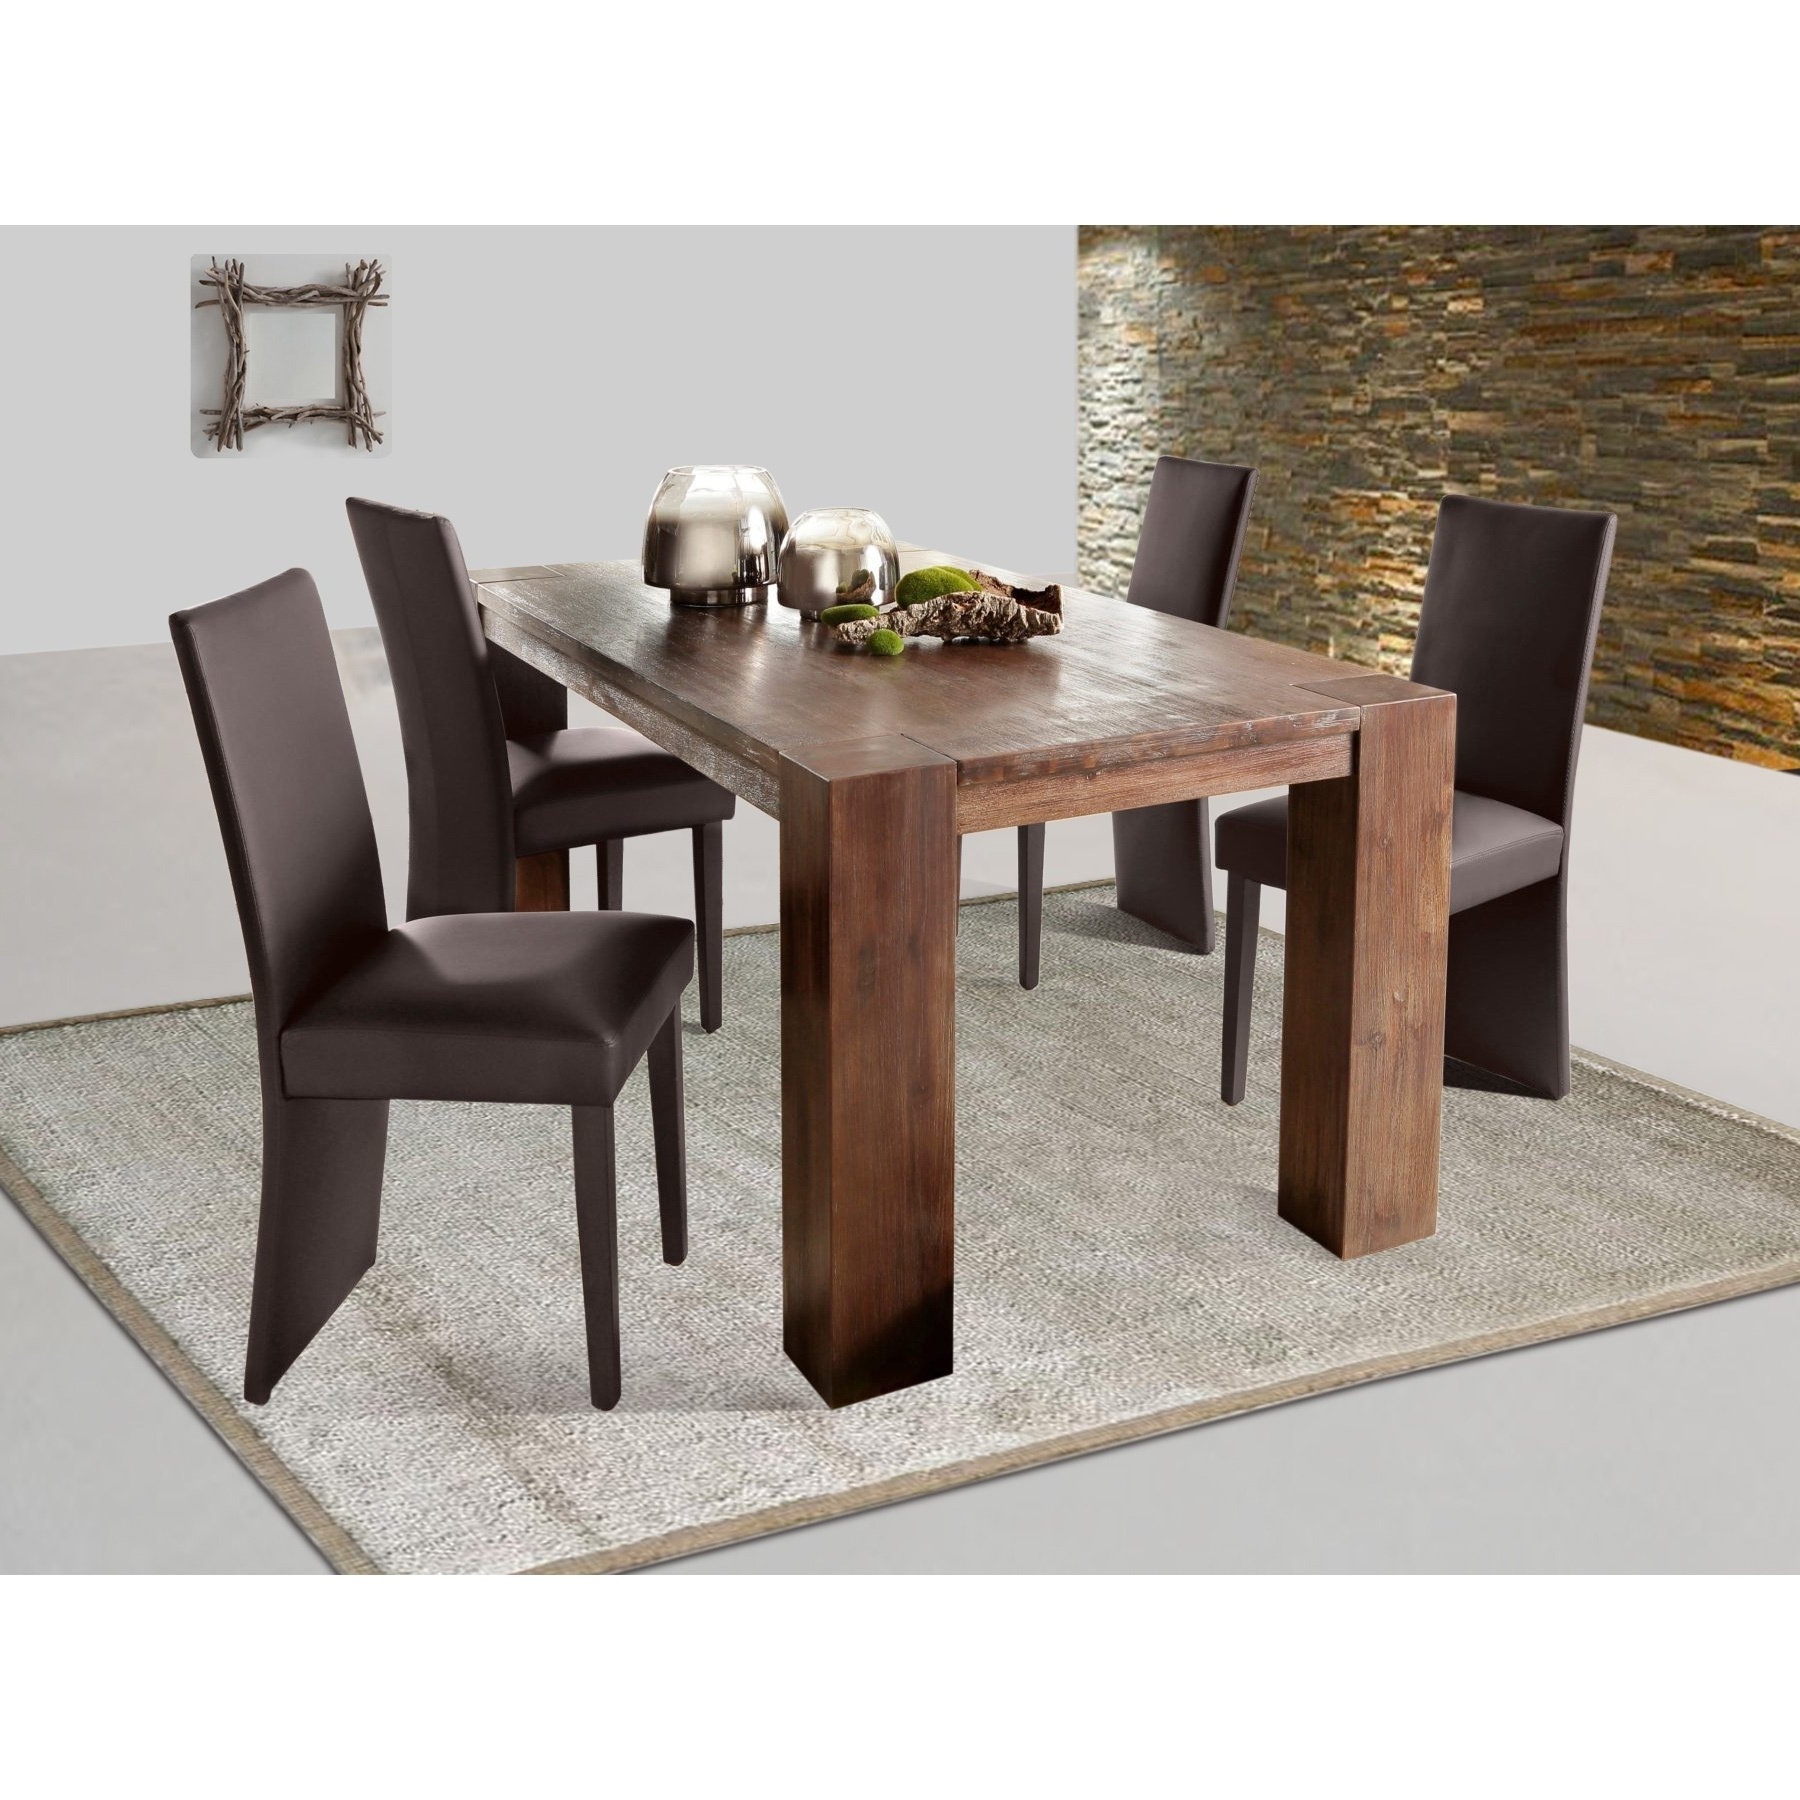 Preferred Dining Tables With Large Legs Intended For Shop Acacia Wide Leg Large Dining Table – Free Shipping Today (View 25 of 25)